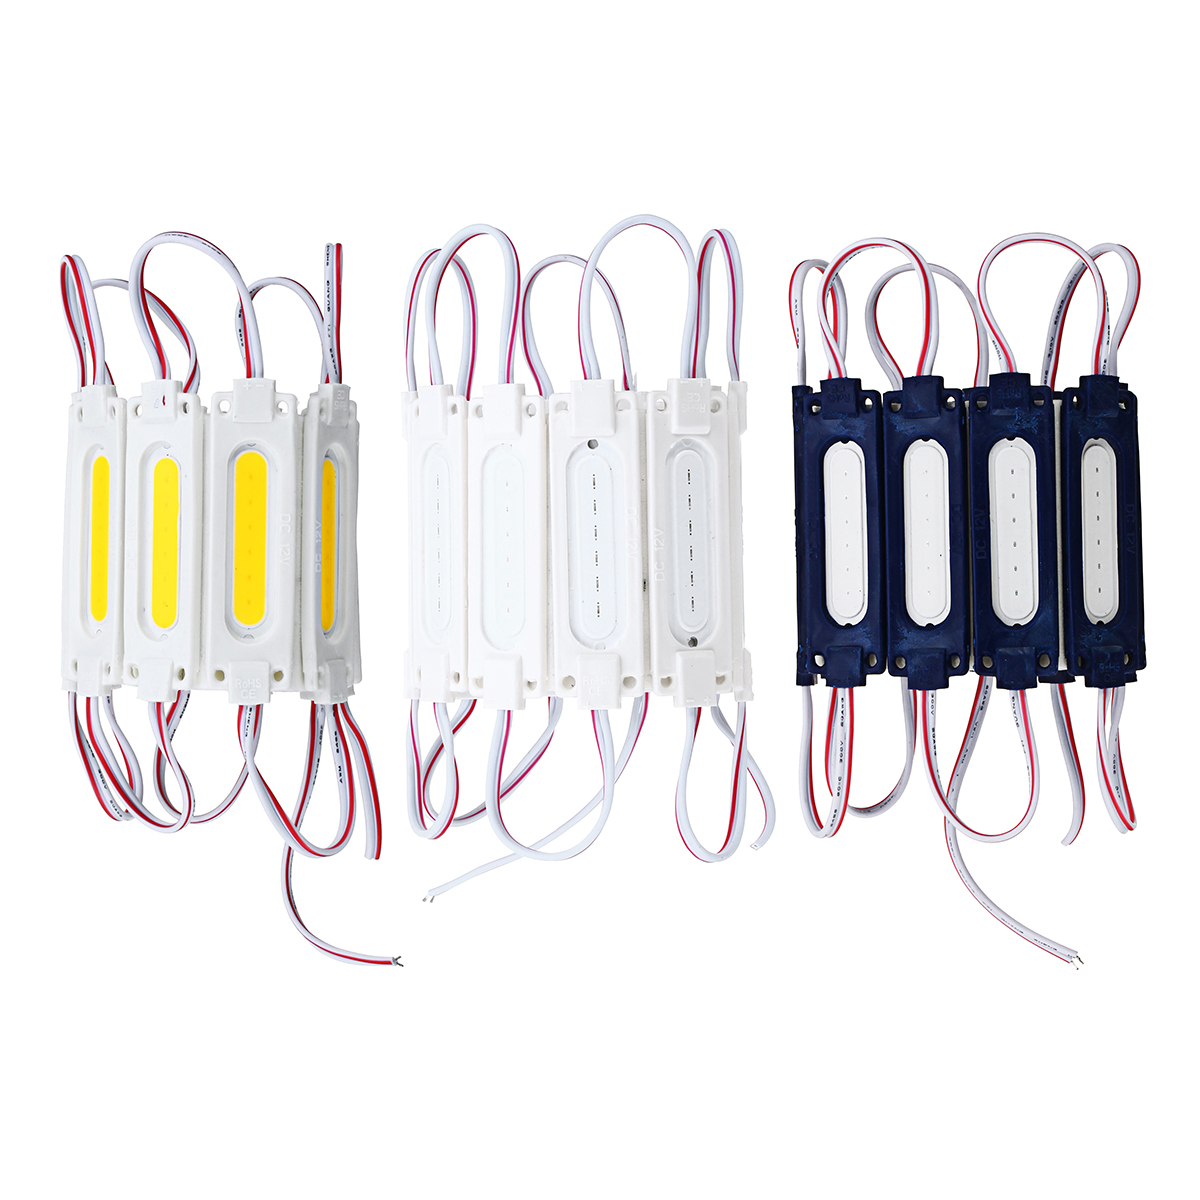 10PCS DC12V COB Warm White/Pure White/Red/Green/Blue LED Module Strip Light for Advertising Sign